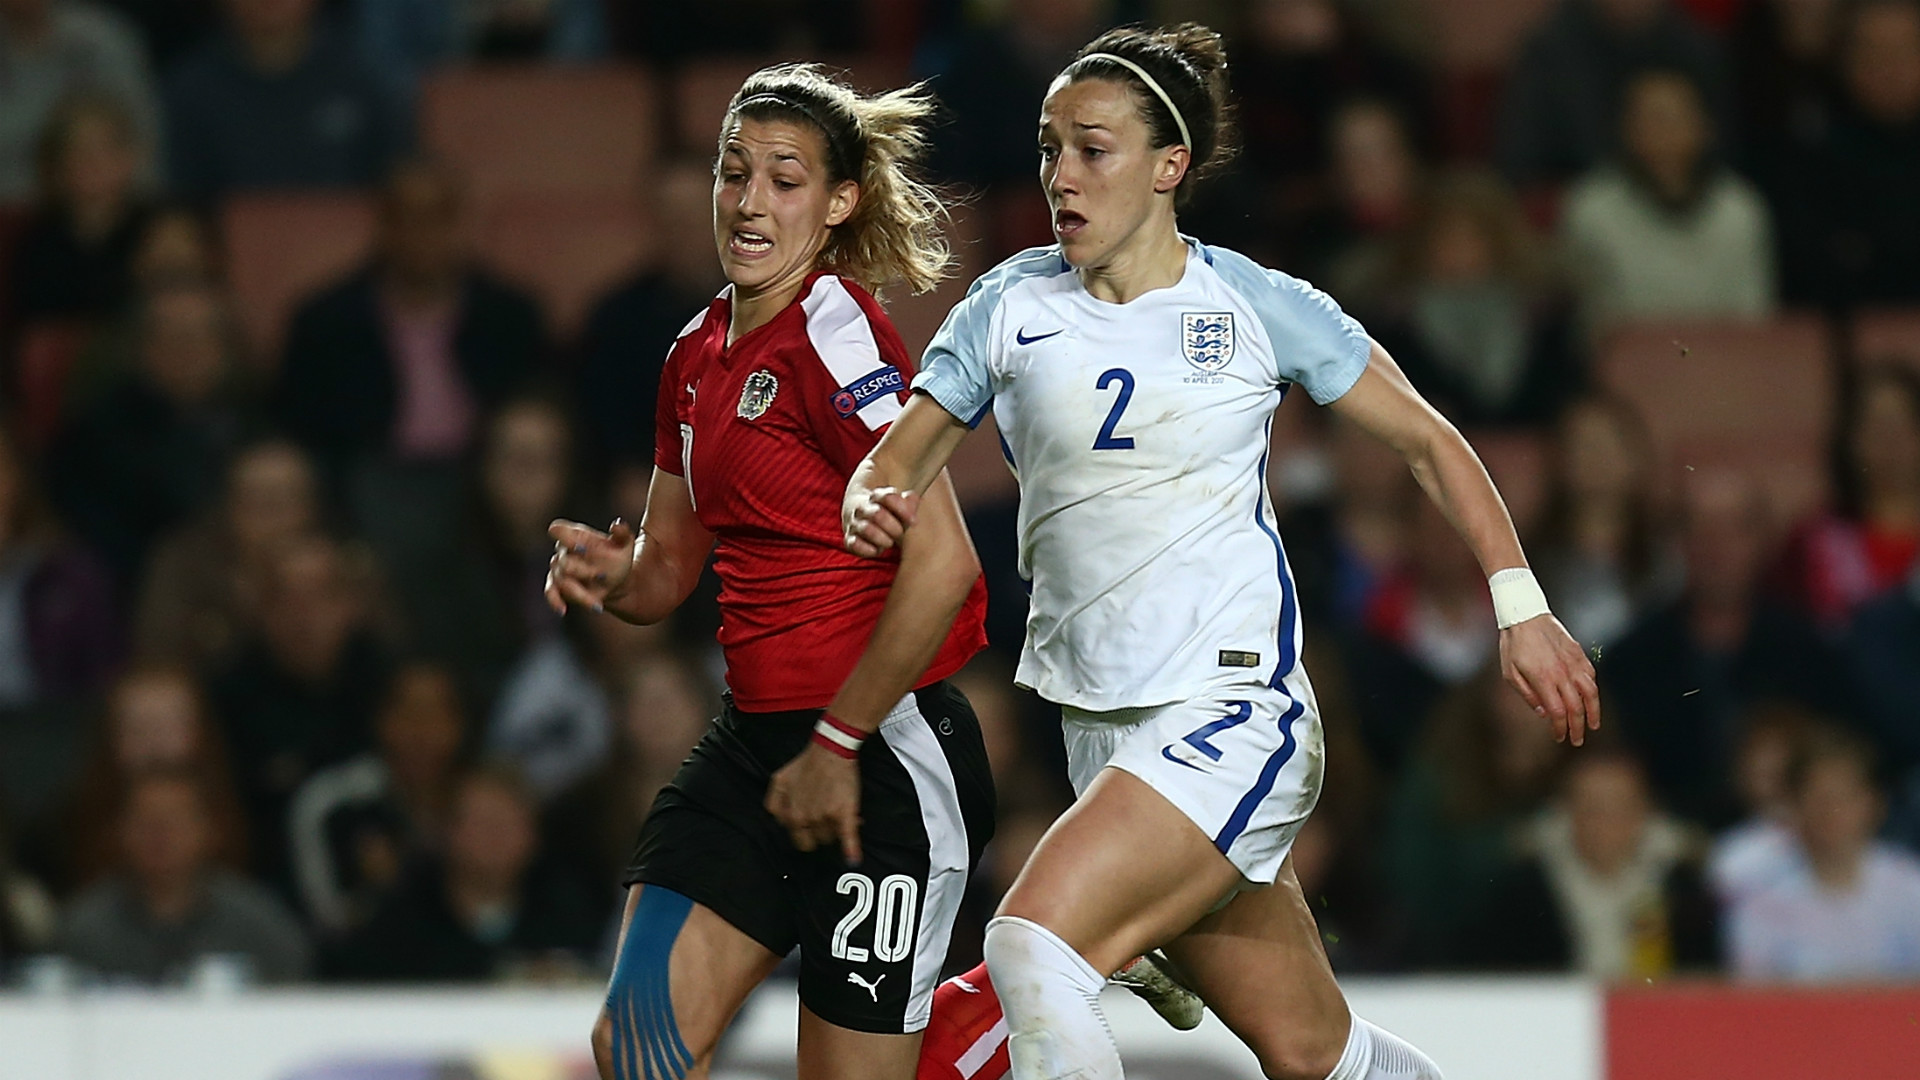 2017 05 kickoff time for national championship game - Lucy Bronze England